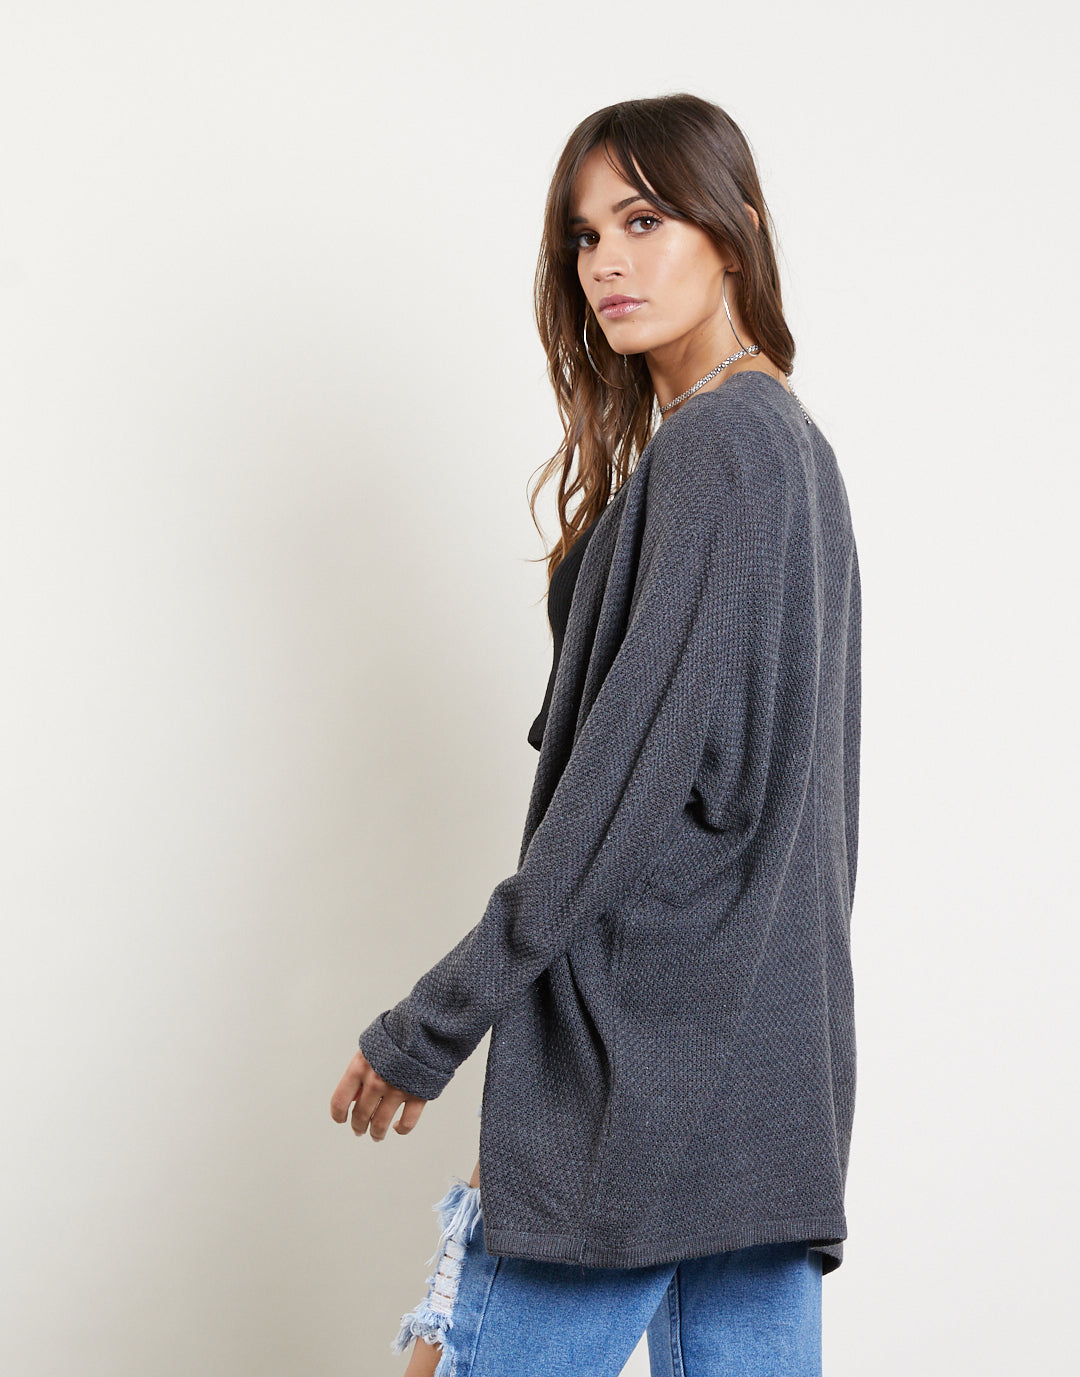 Textured Cuffed Sleeves Cardigan